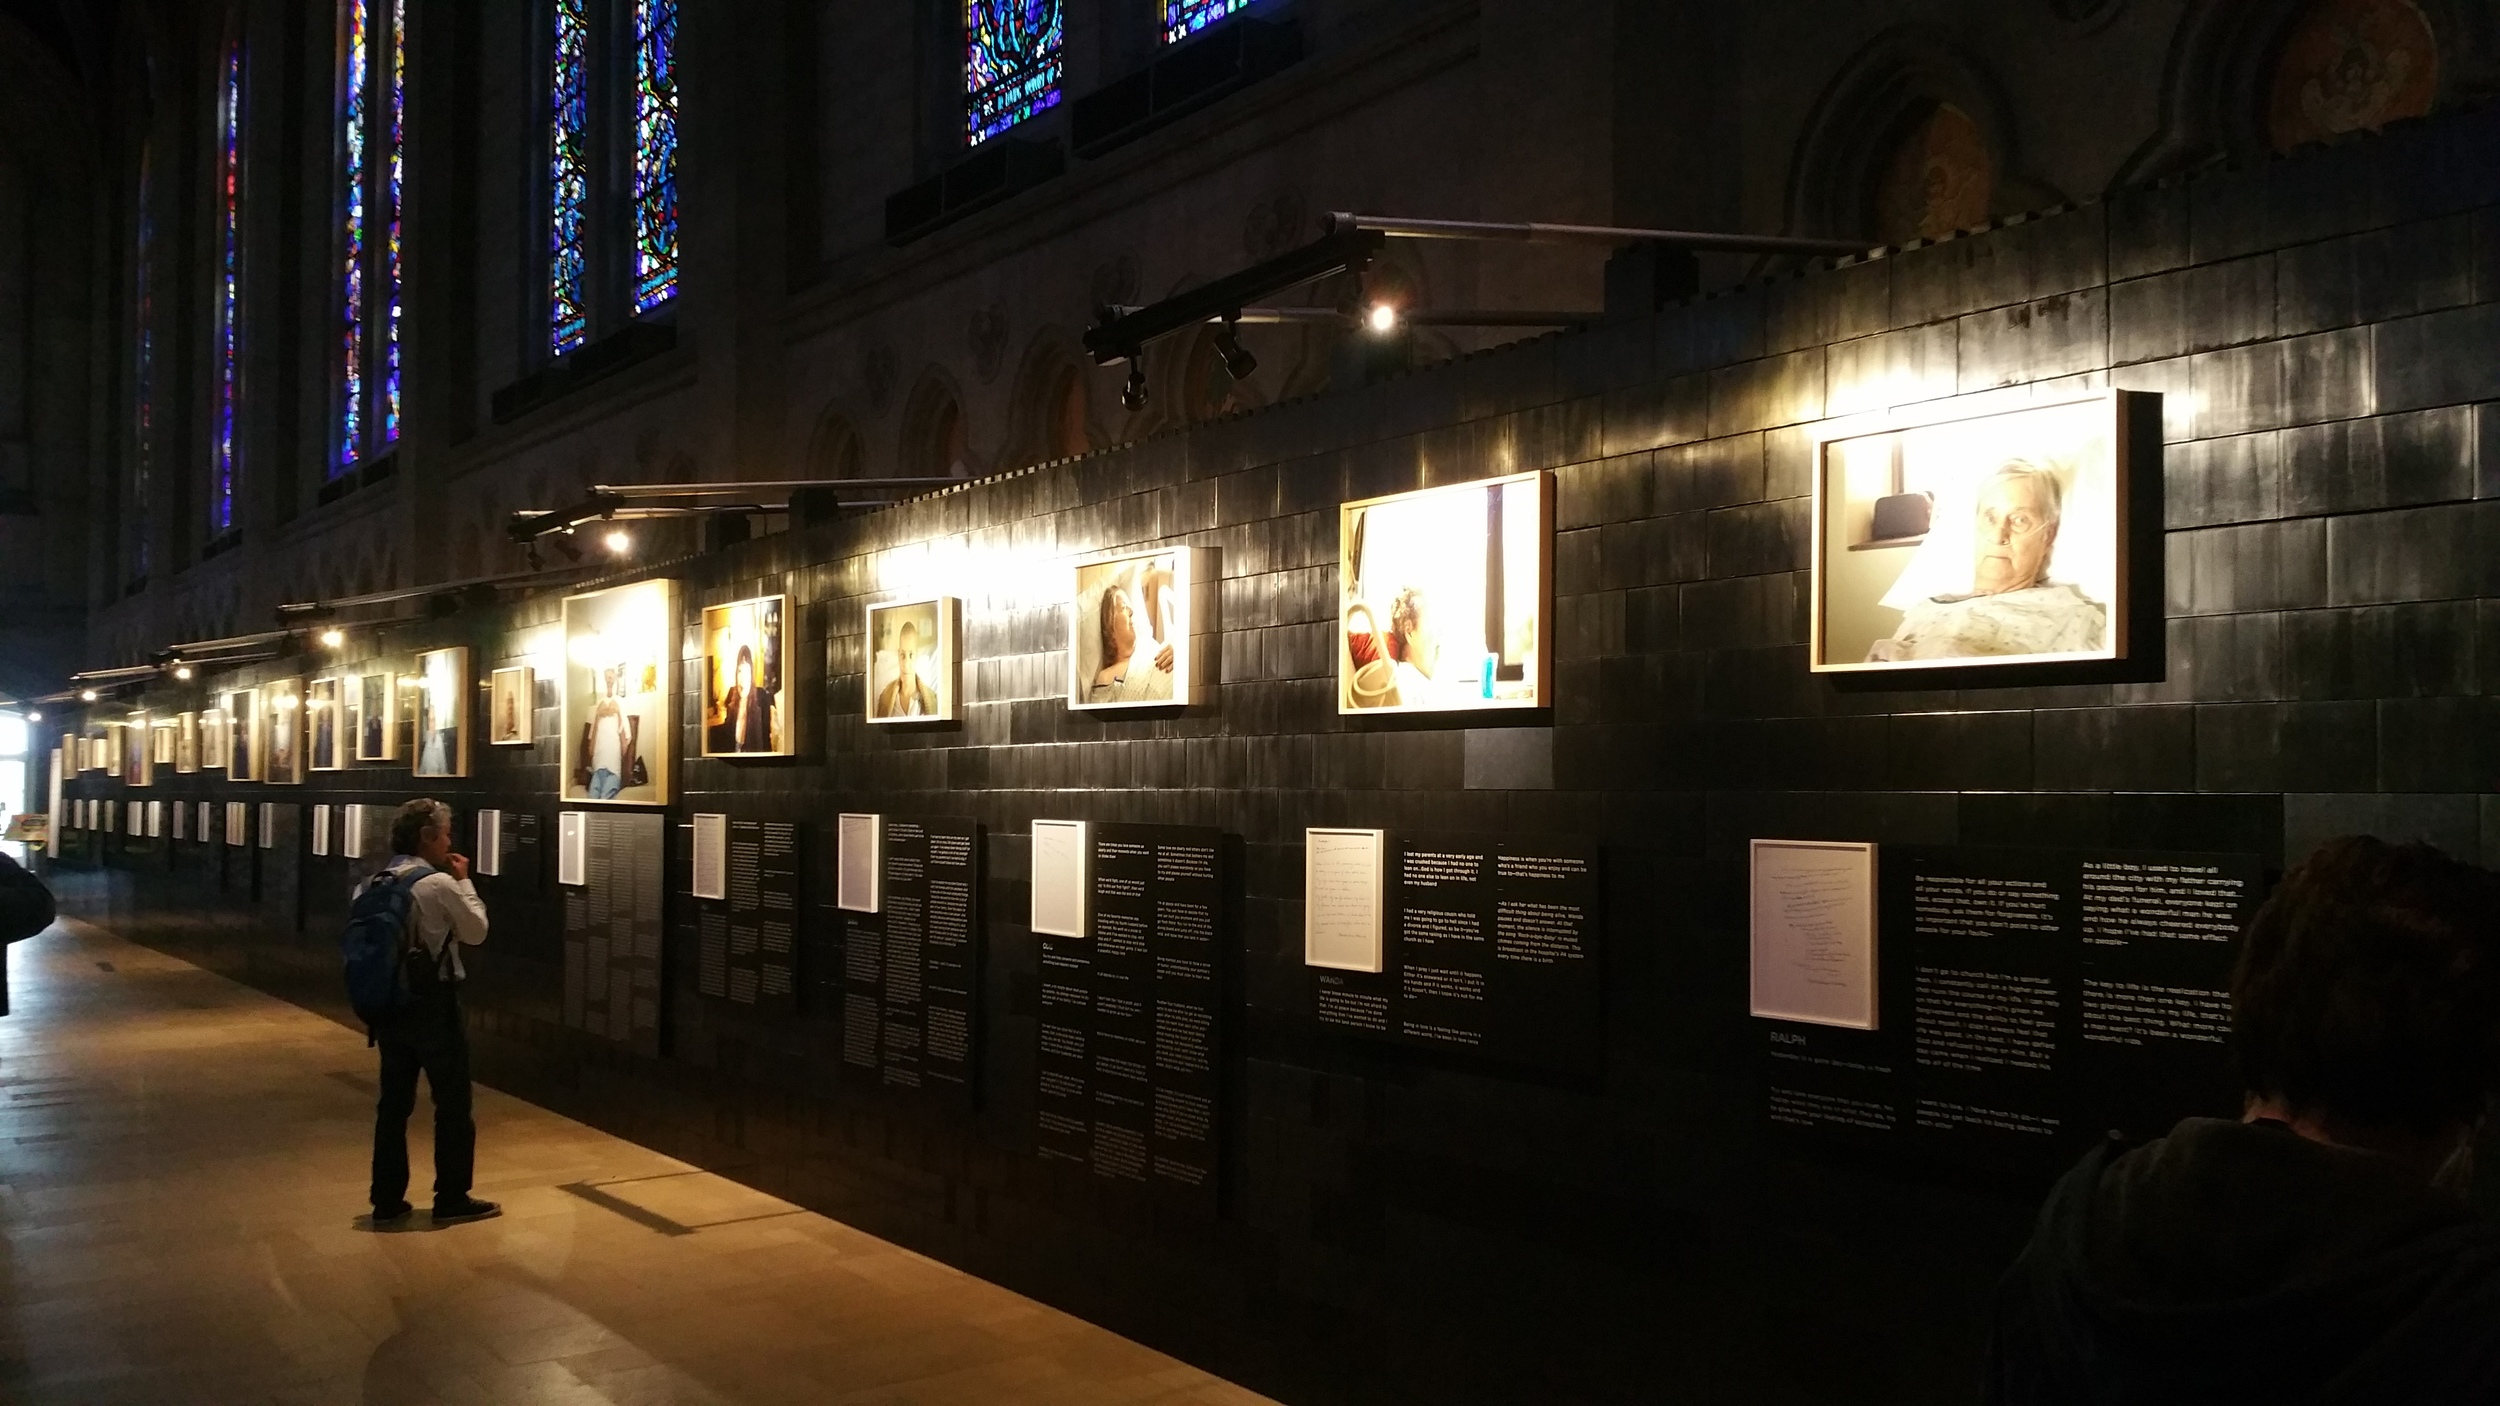 Create amazing temporary gallery walls for displaying art and customize your design for each venue or event site.